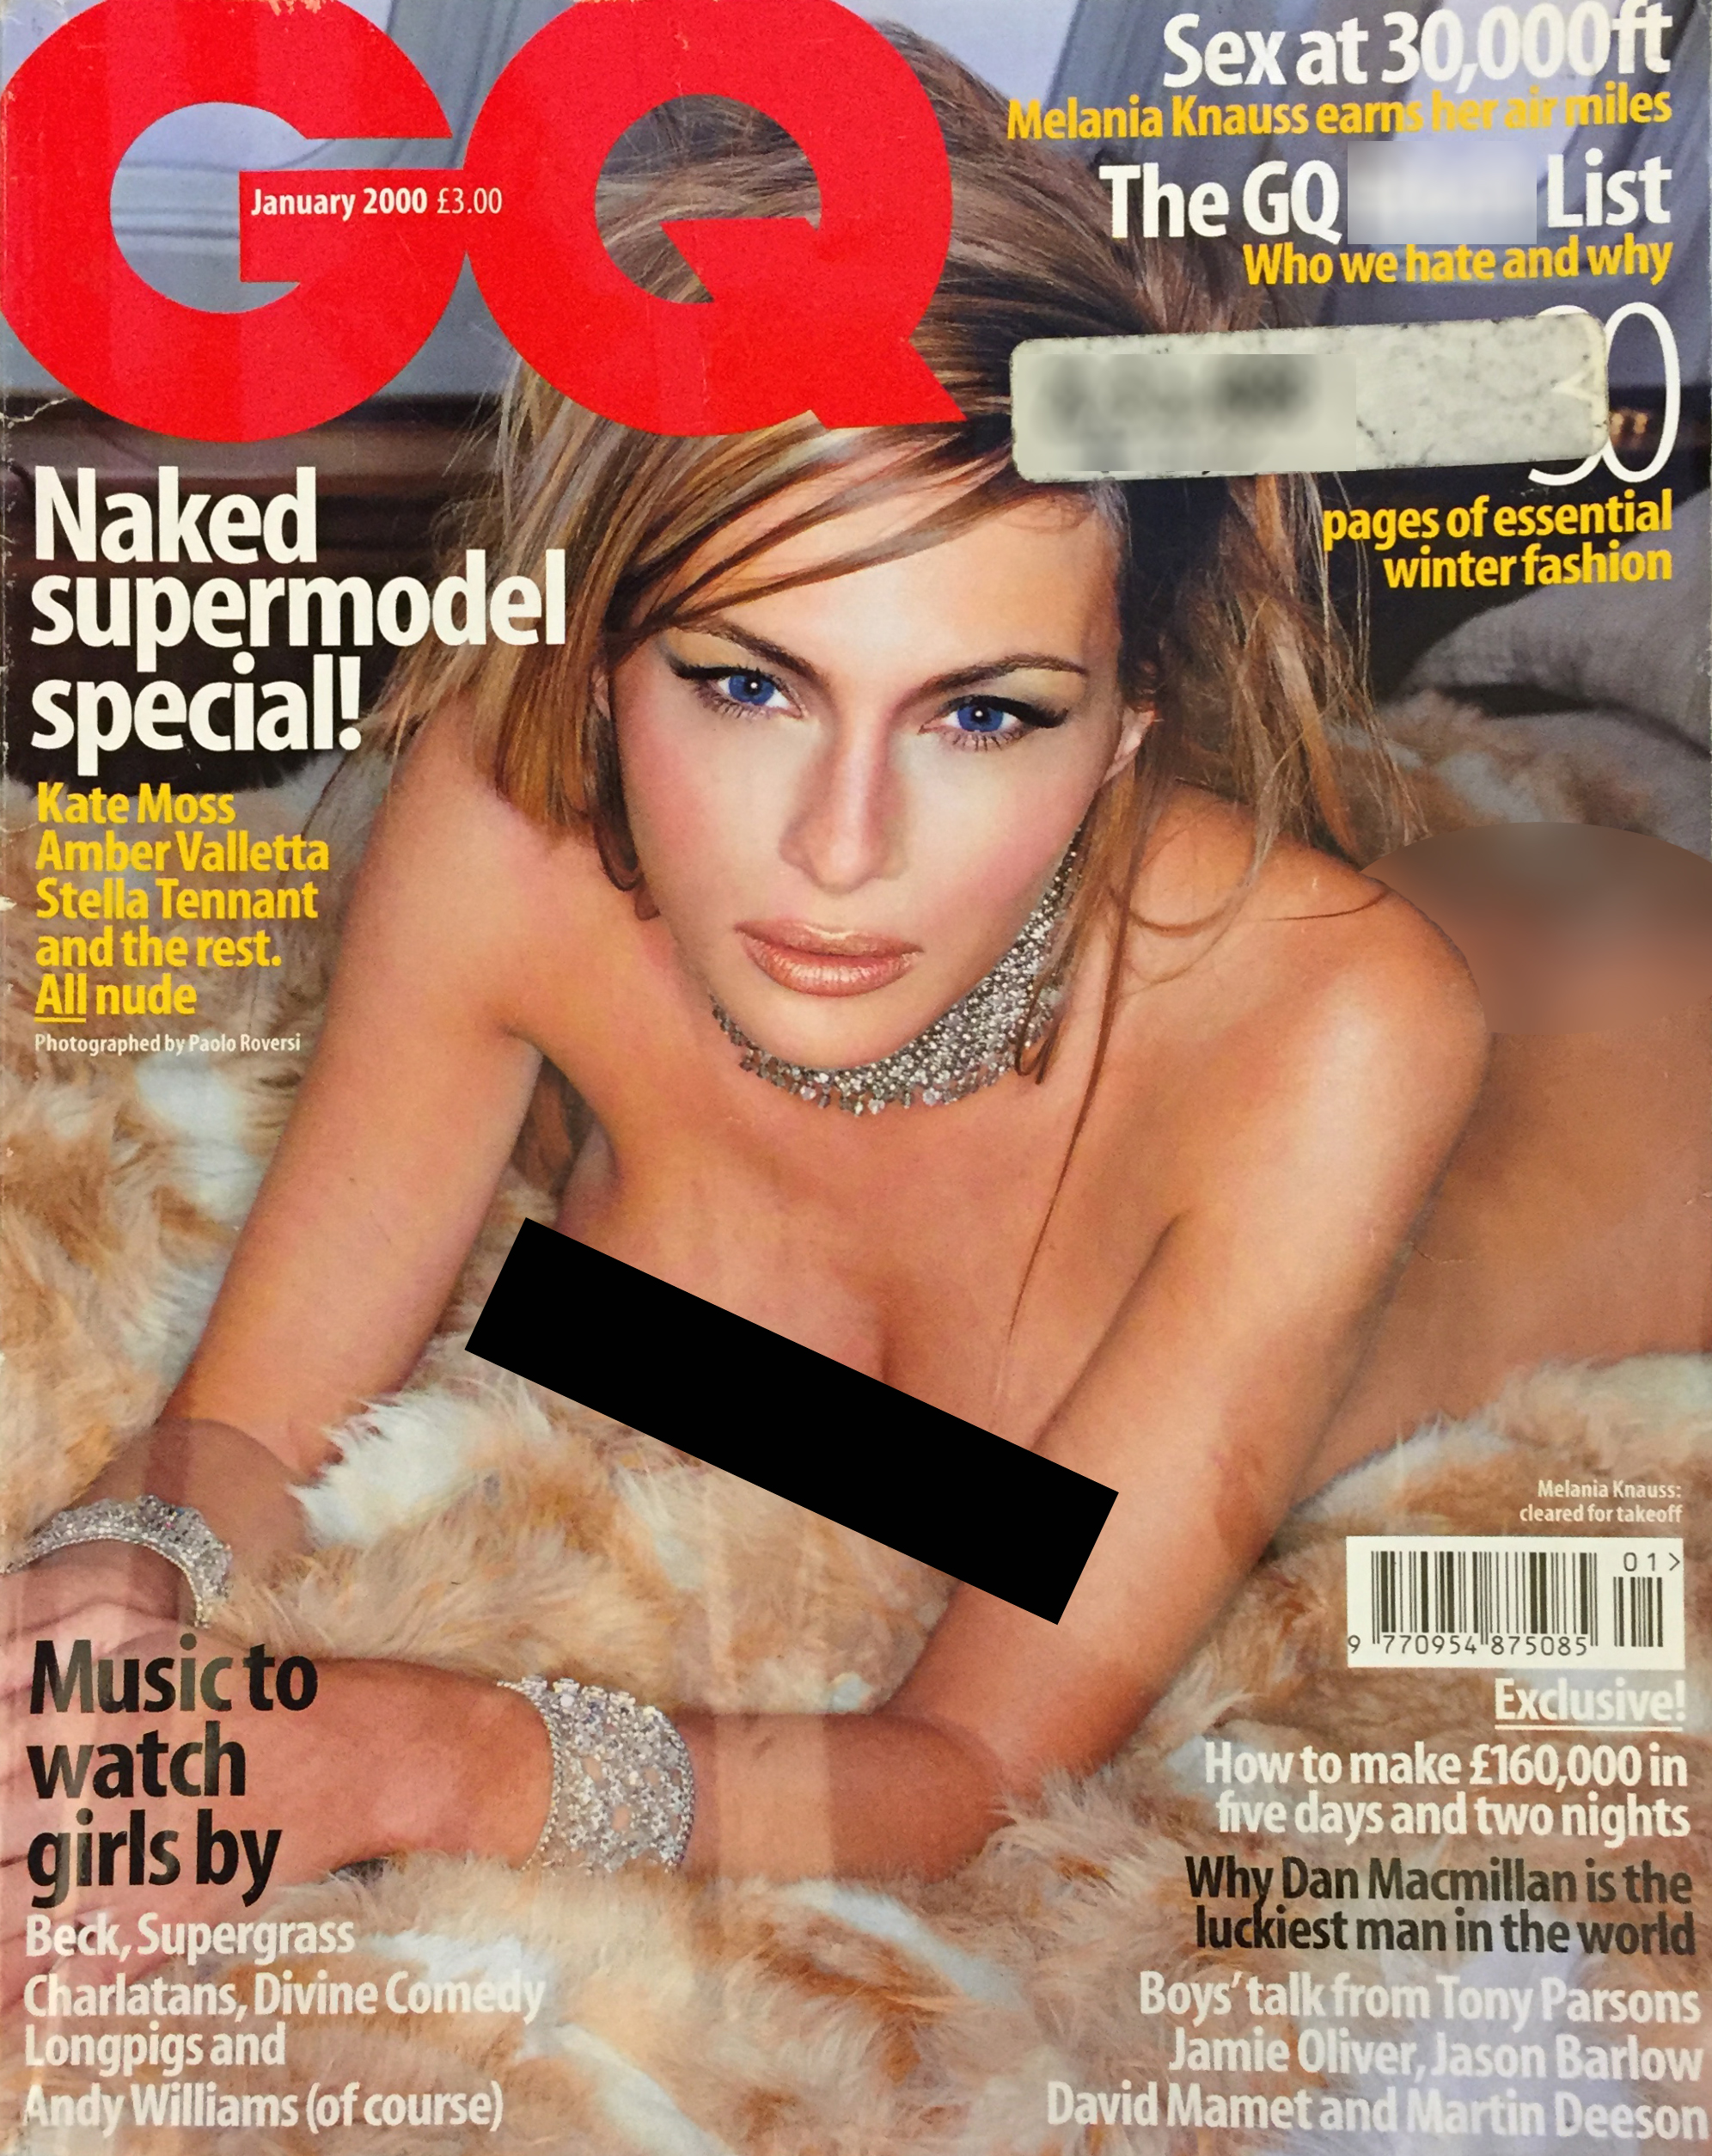 Is trumps wife still posing nude